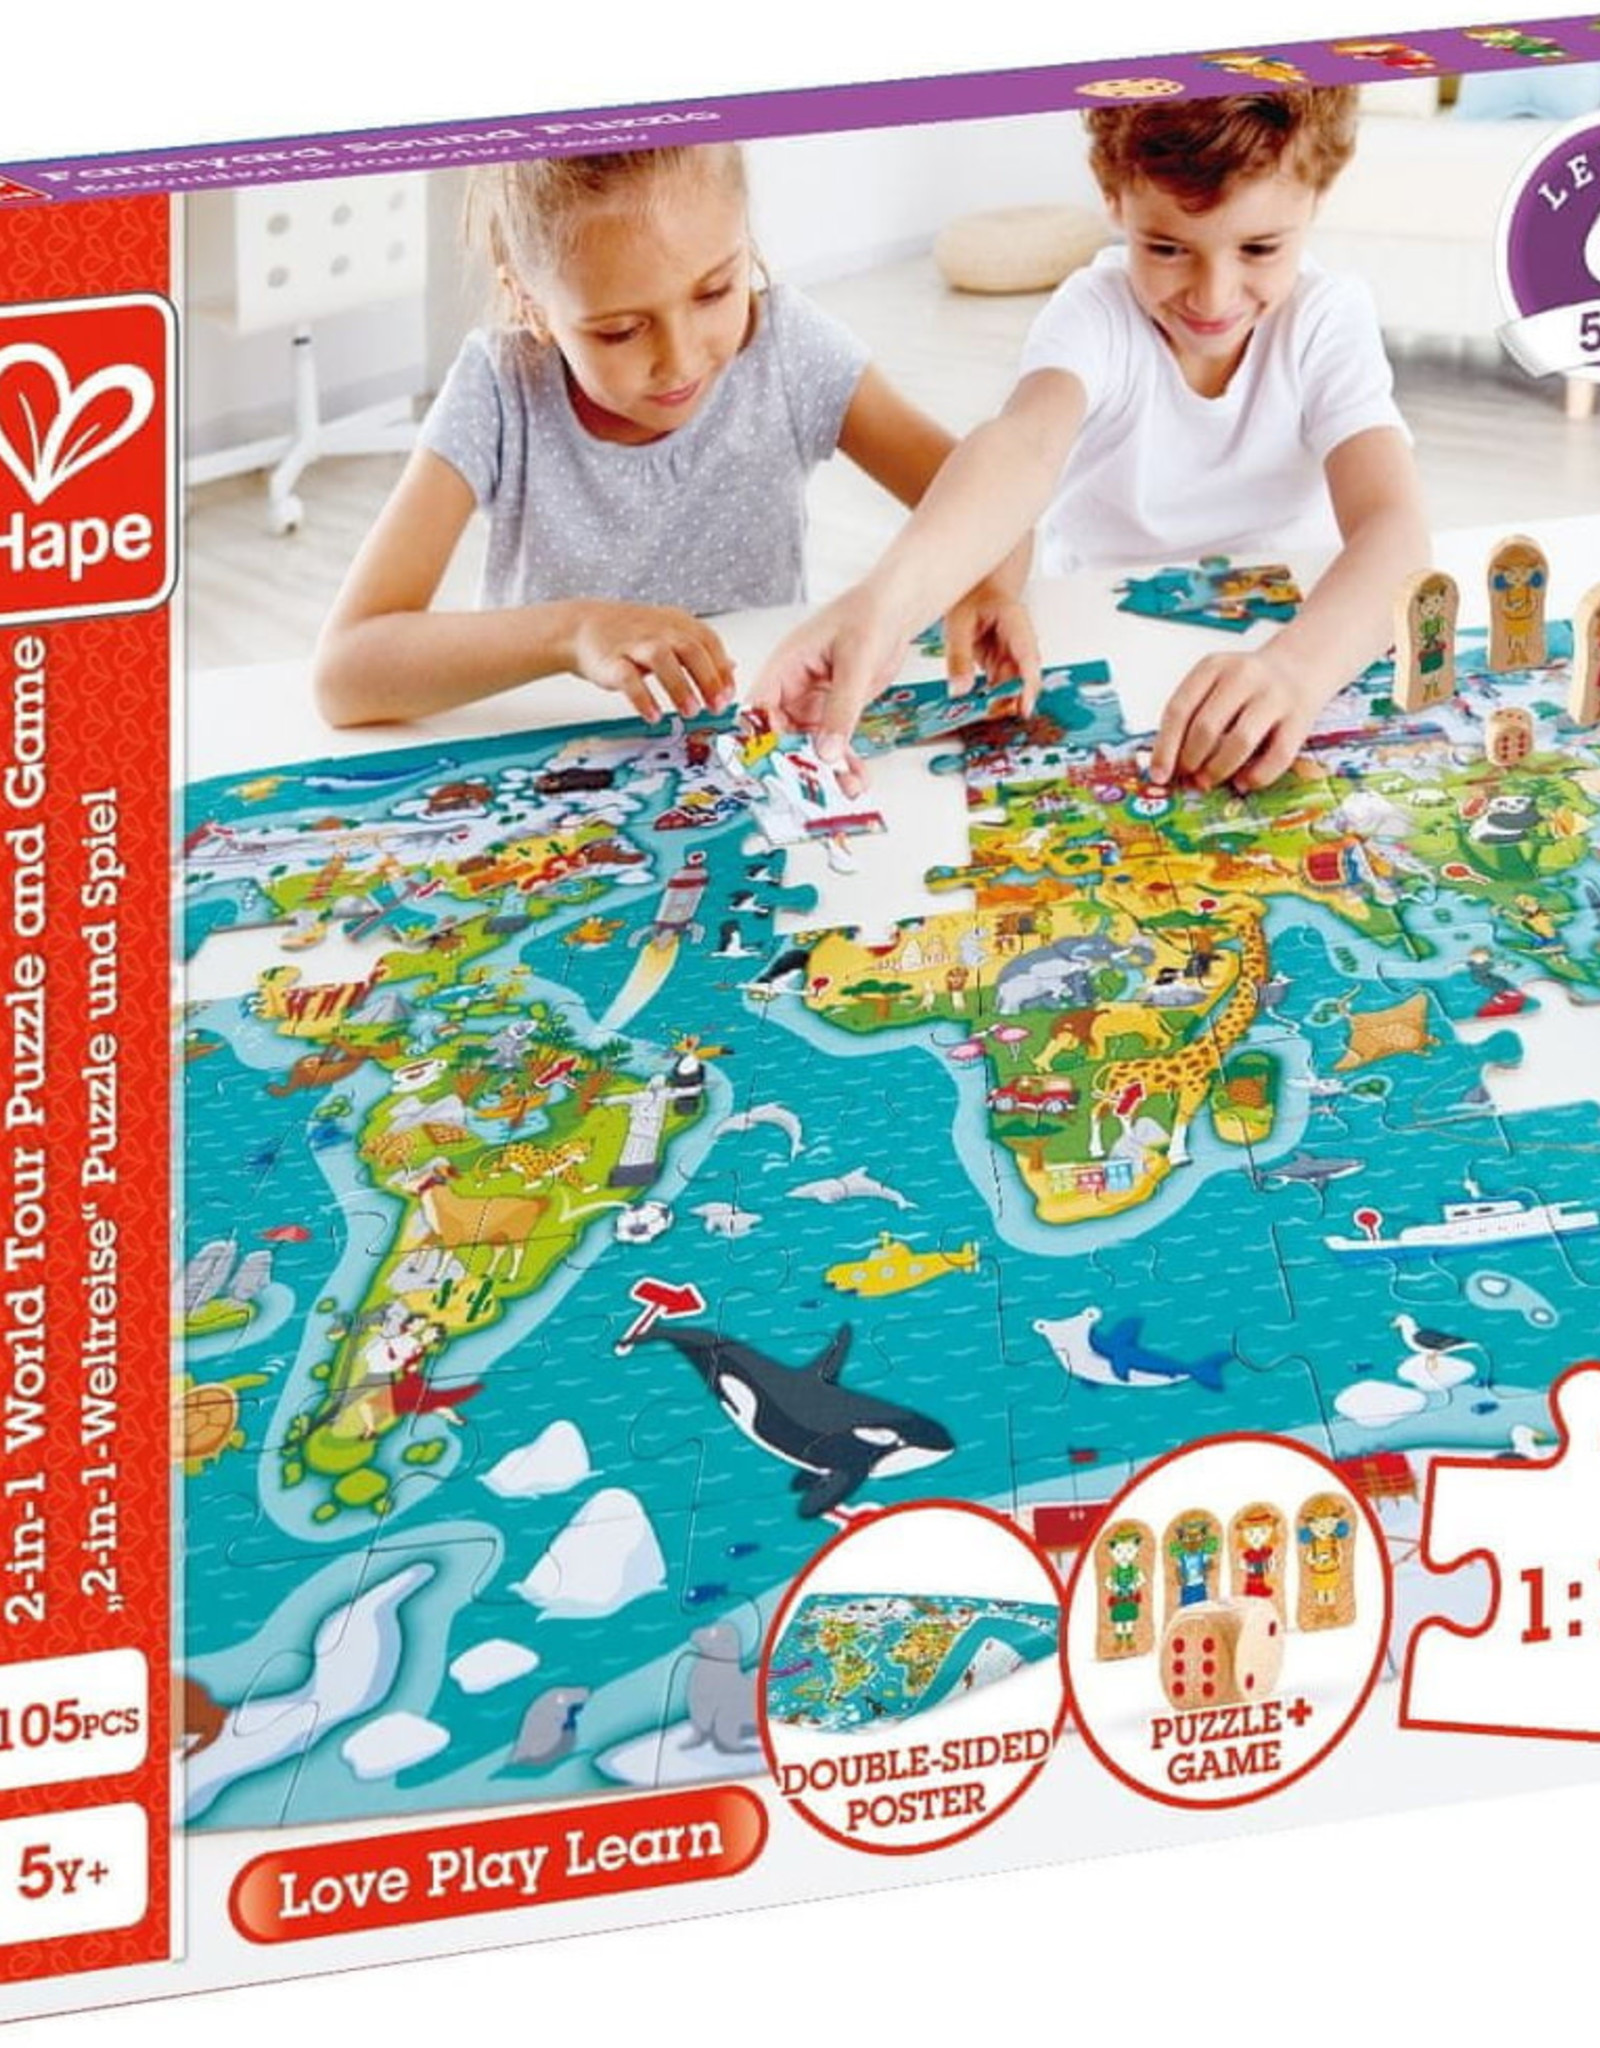 Hape Toys Hape 2-in-1 World Tour Puzzle and Game